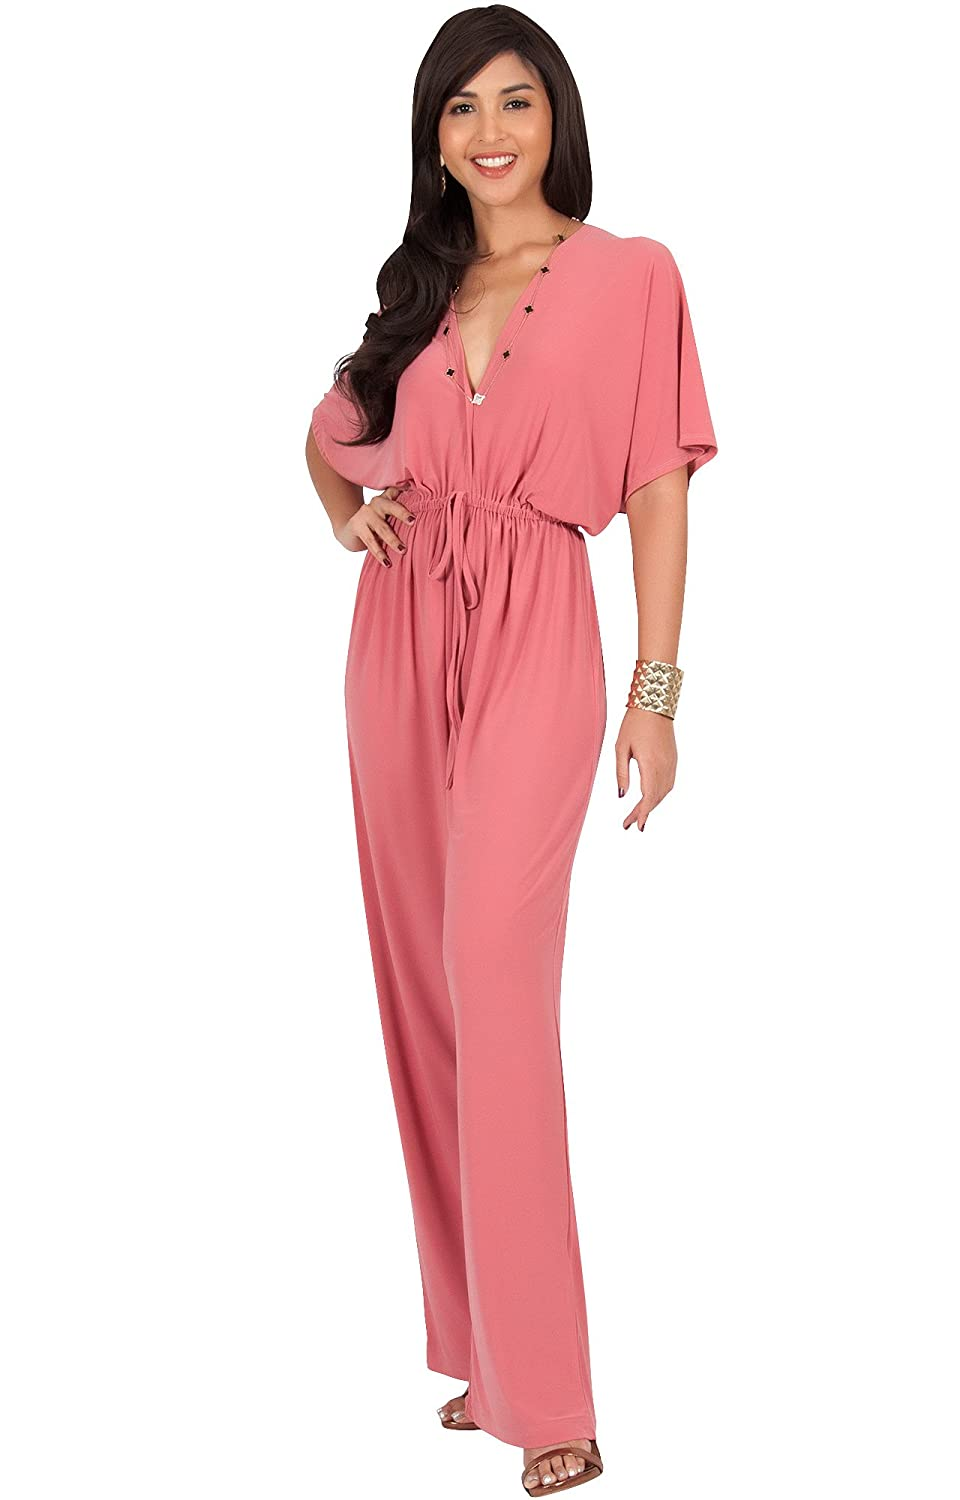 23fbce058a8 KOH KOH Womens Short Kimono Sleeve One Piece Jumpsuit Cocktail Romper Pant  Suit NT019